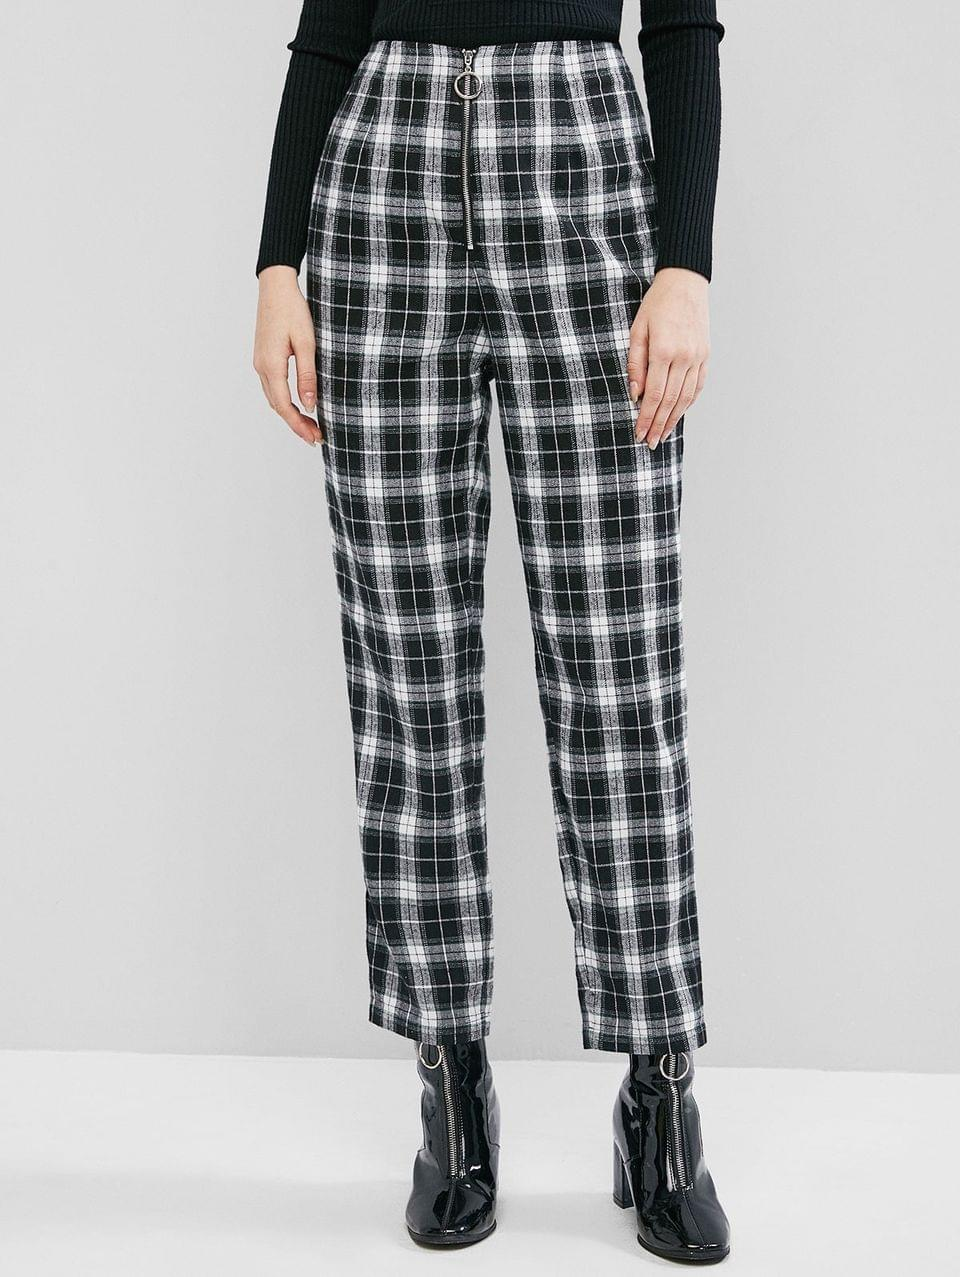 Women's Zip Front Plaid High Waisted Straight Pants - Black M